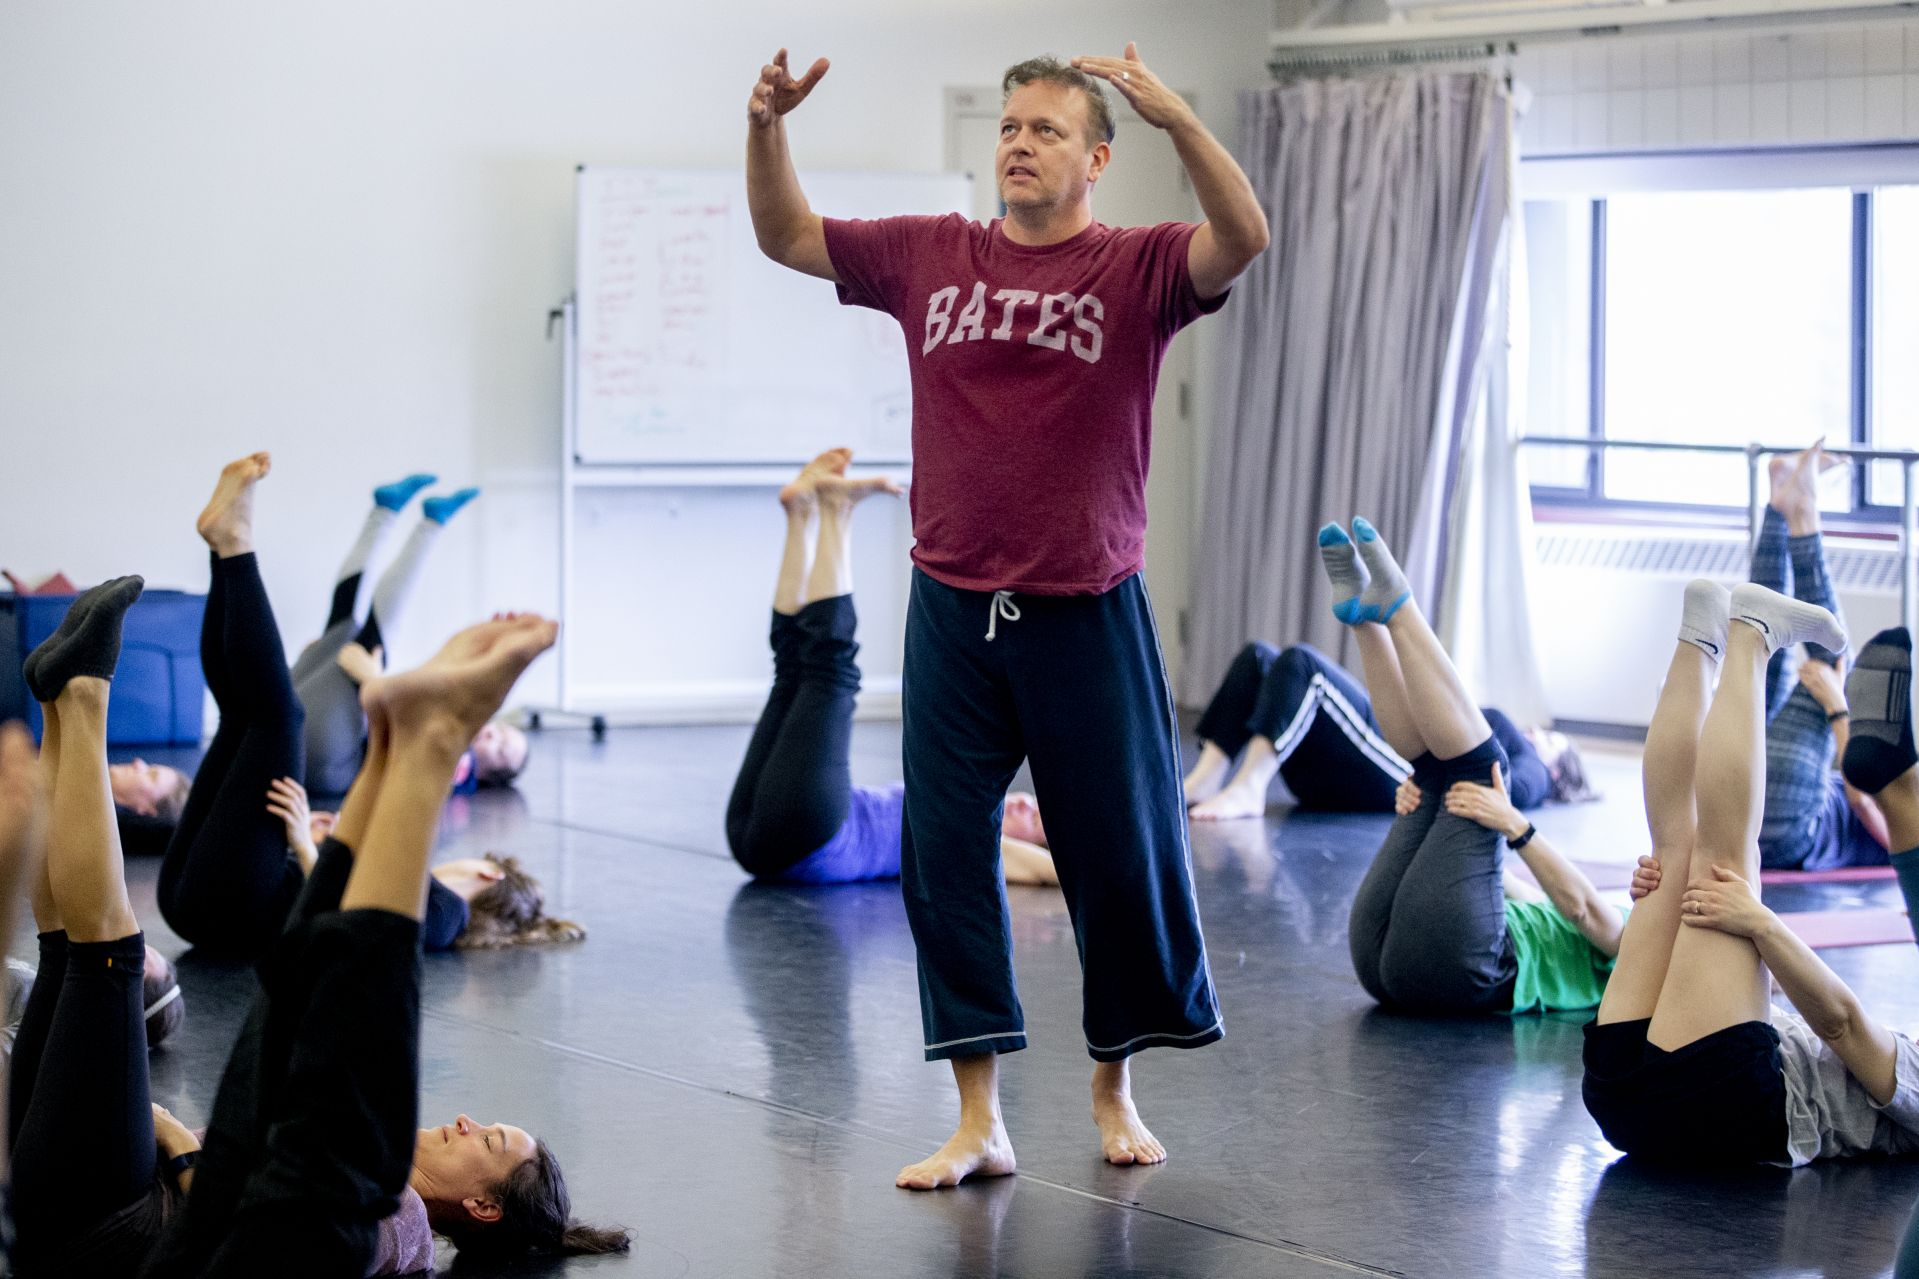 """""""It's incredibly edifying go be in the presence of such strong women who this program built its shoulders upon.""""Michael Foley '89 opens his class on Modern Dance for the over-40s in the Marcy Plavin Dance Studios. The session was one of several classes held on campus this morning as part of the weekend-long """"50 Years of Bates Dance"""" celebration ."""